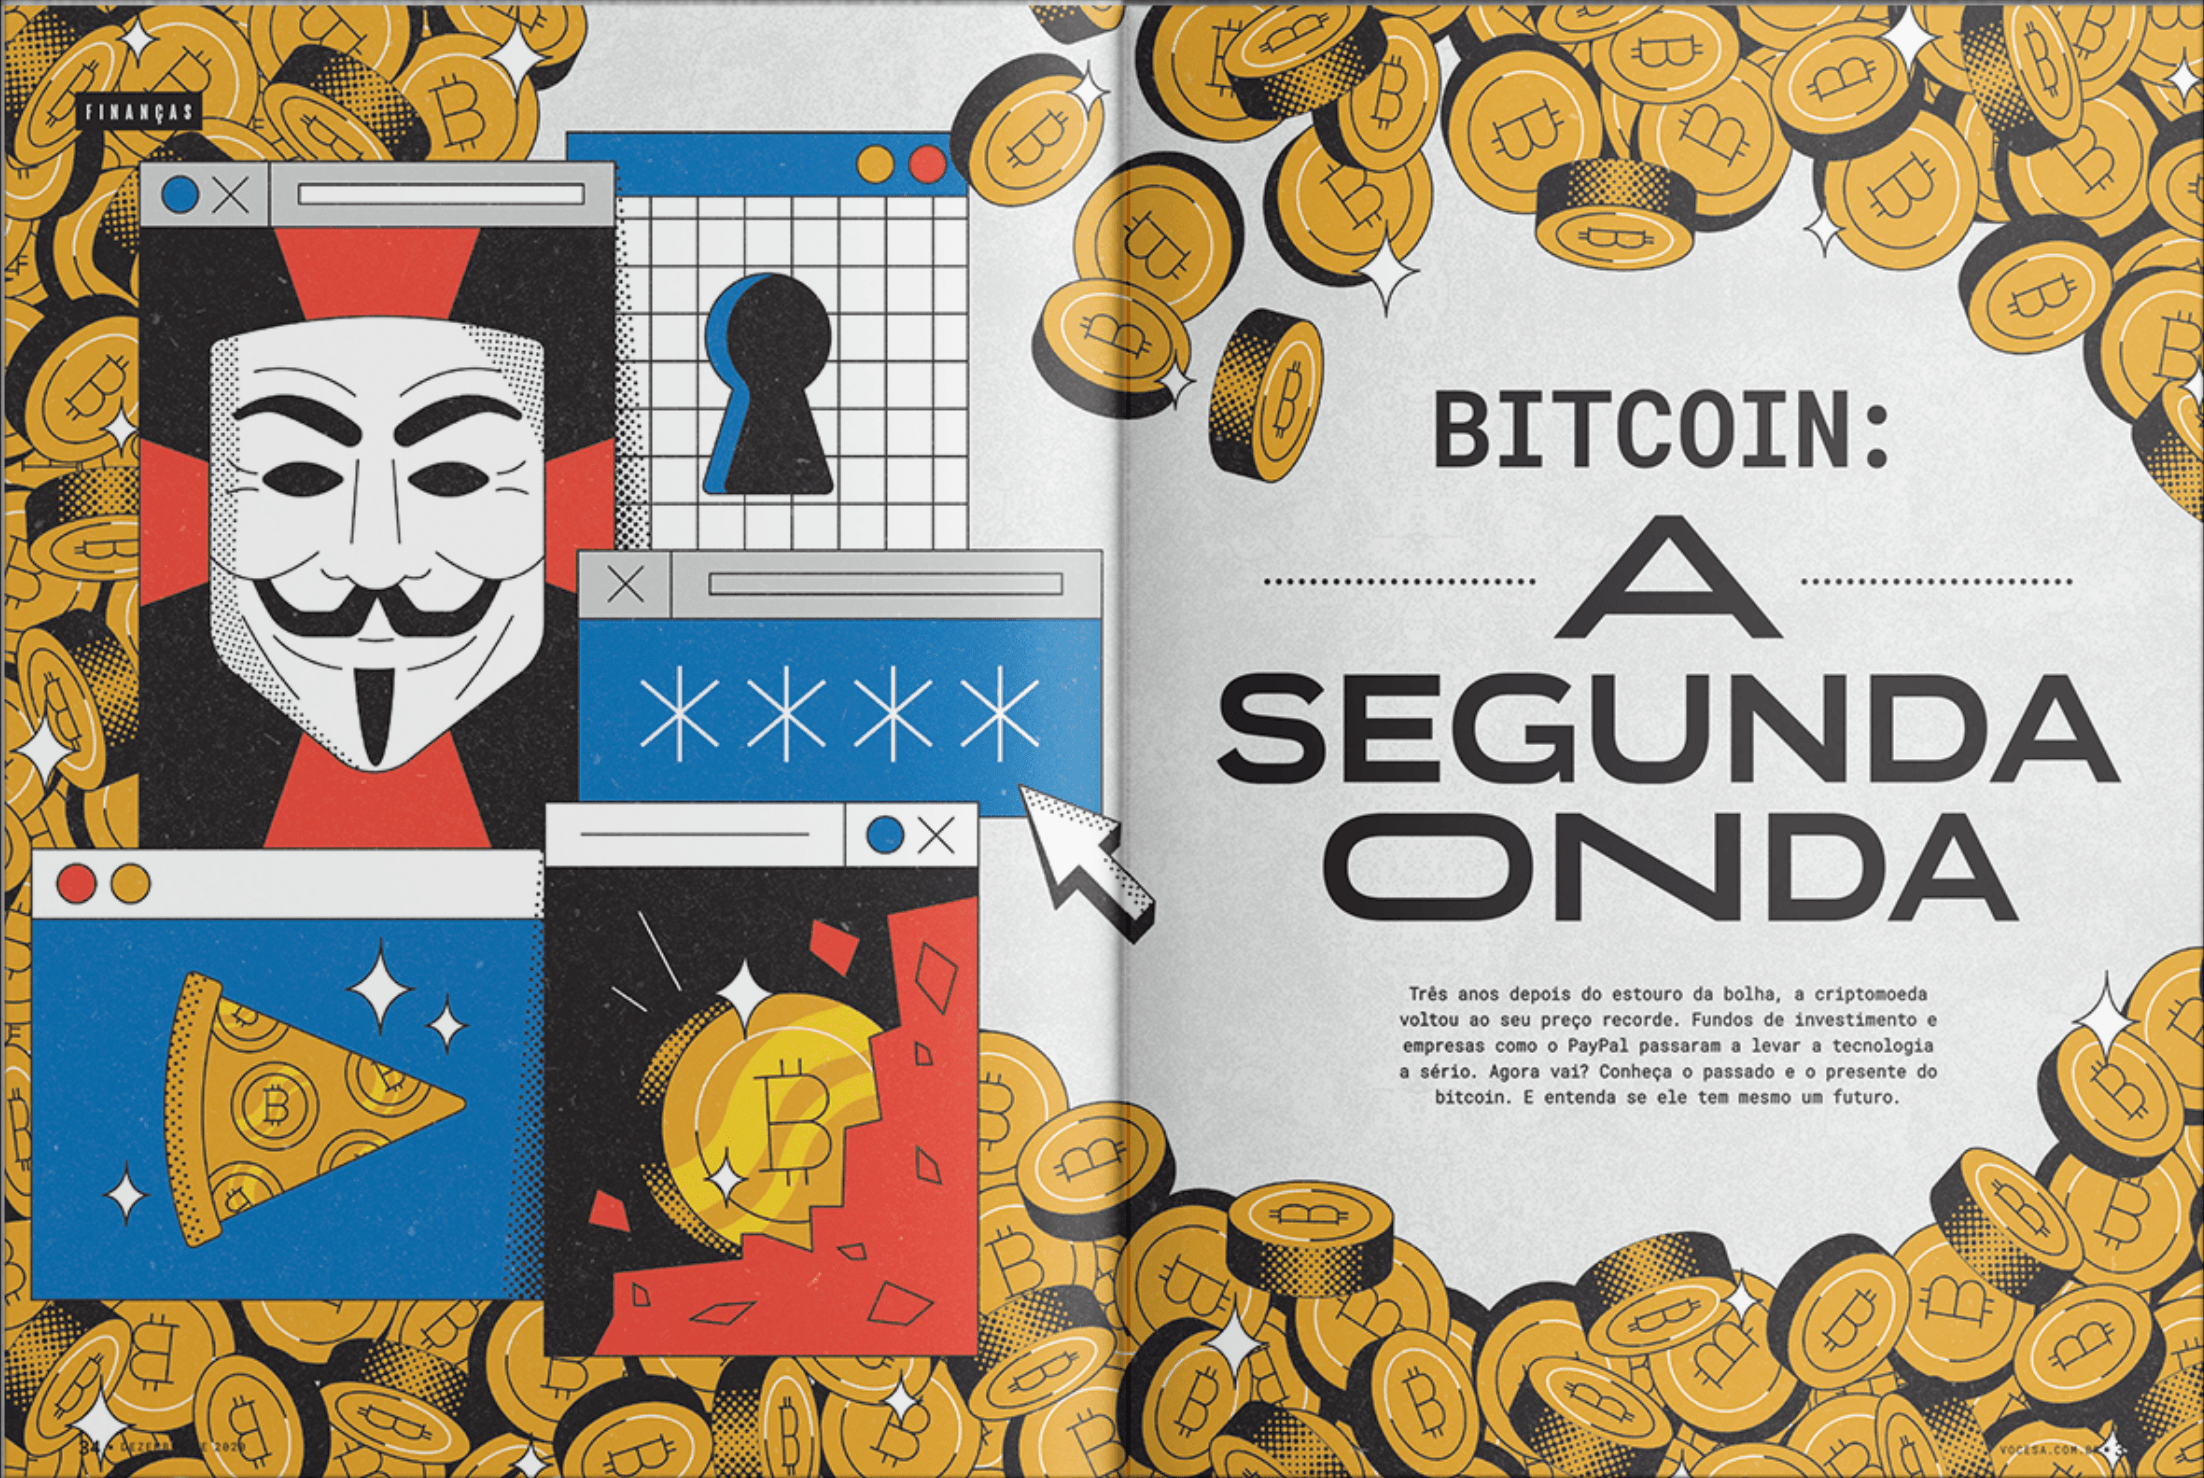 Illustrations by Gustavo for the magazine Voce S/A Magazine.